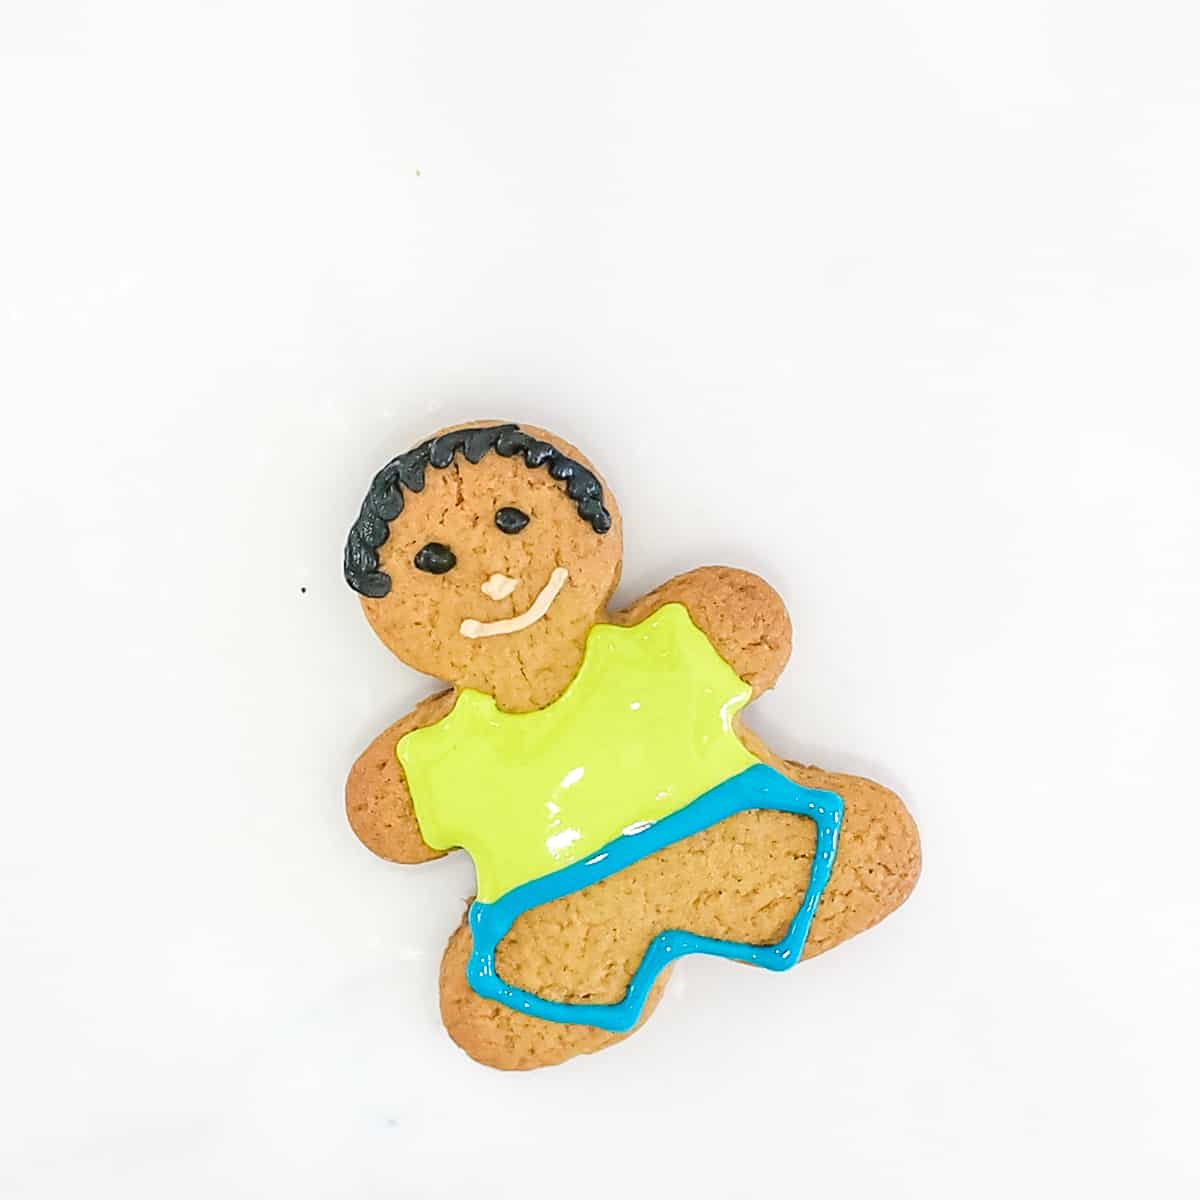 A gingerbread cookie decorated as a boy with green shirt and blue outline for pants